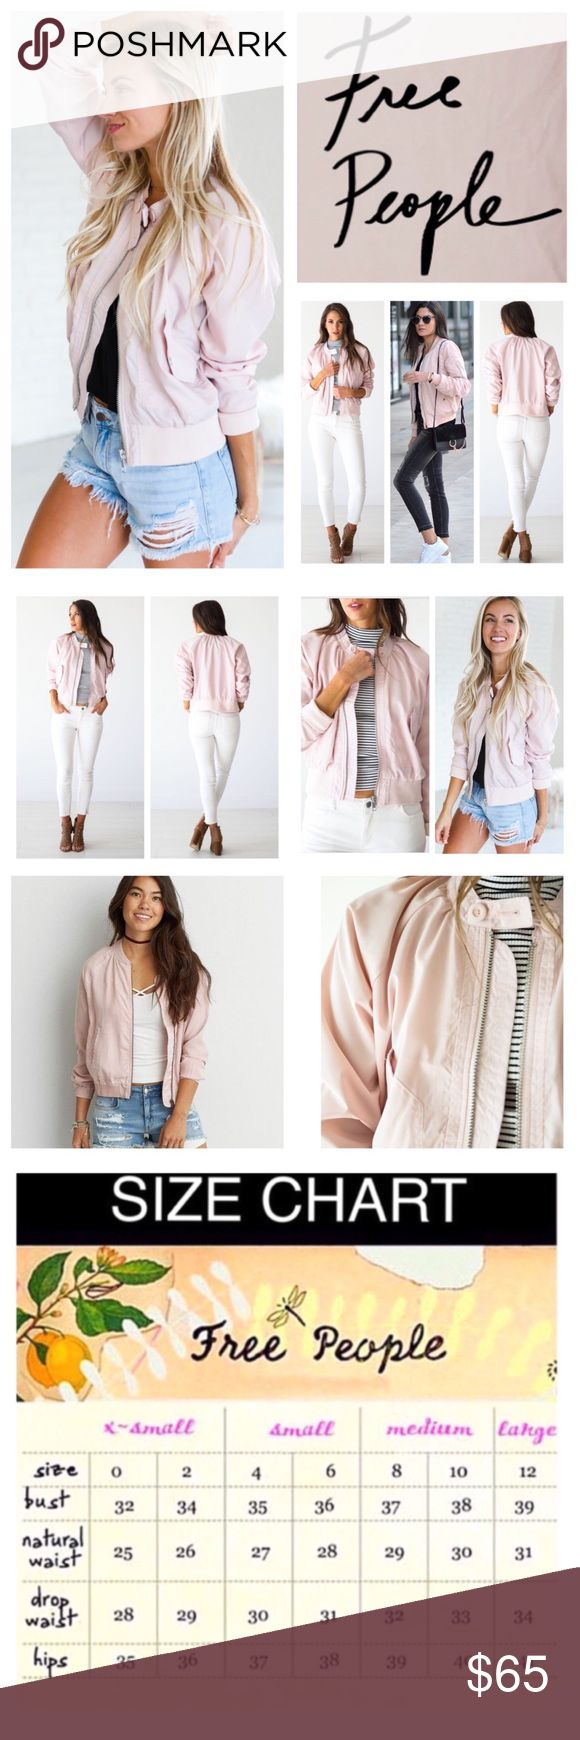 """Free People Pink Lightweight Bomber Jacket.  NWT. Free People Pink Lightweight Bomber Jacket, 100% polyester, machine washable, 23"""" armpit to armpit (46"""" all around), 19.5"""" arm inseam, 23"""" length, exposed side pocket details, button closure at neck, stretchy band at the waist and sleeve cuffs for an easy comfortable fit, collarless, long sleeves, measurements are approx.  NO TRADES Free People Jackets & Coats"""